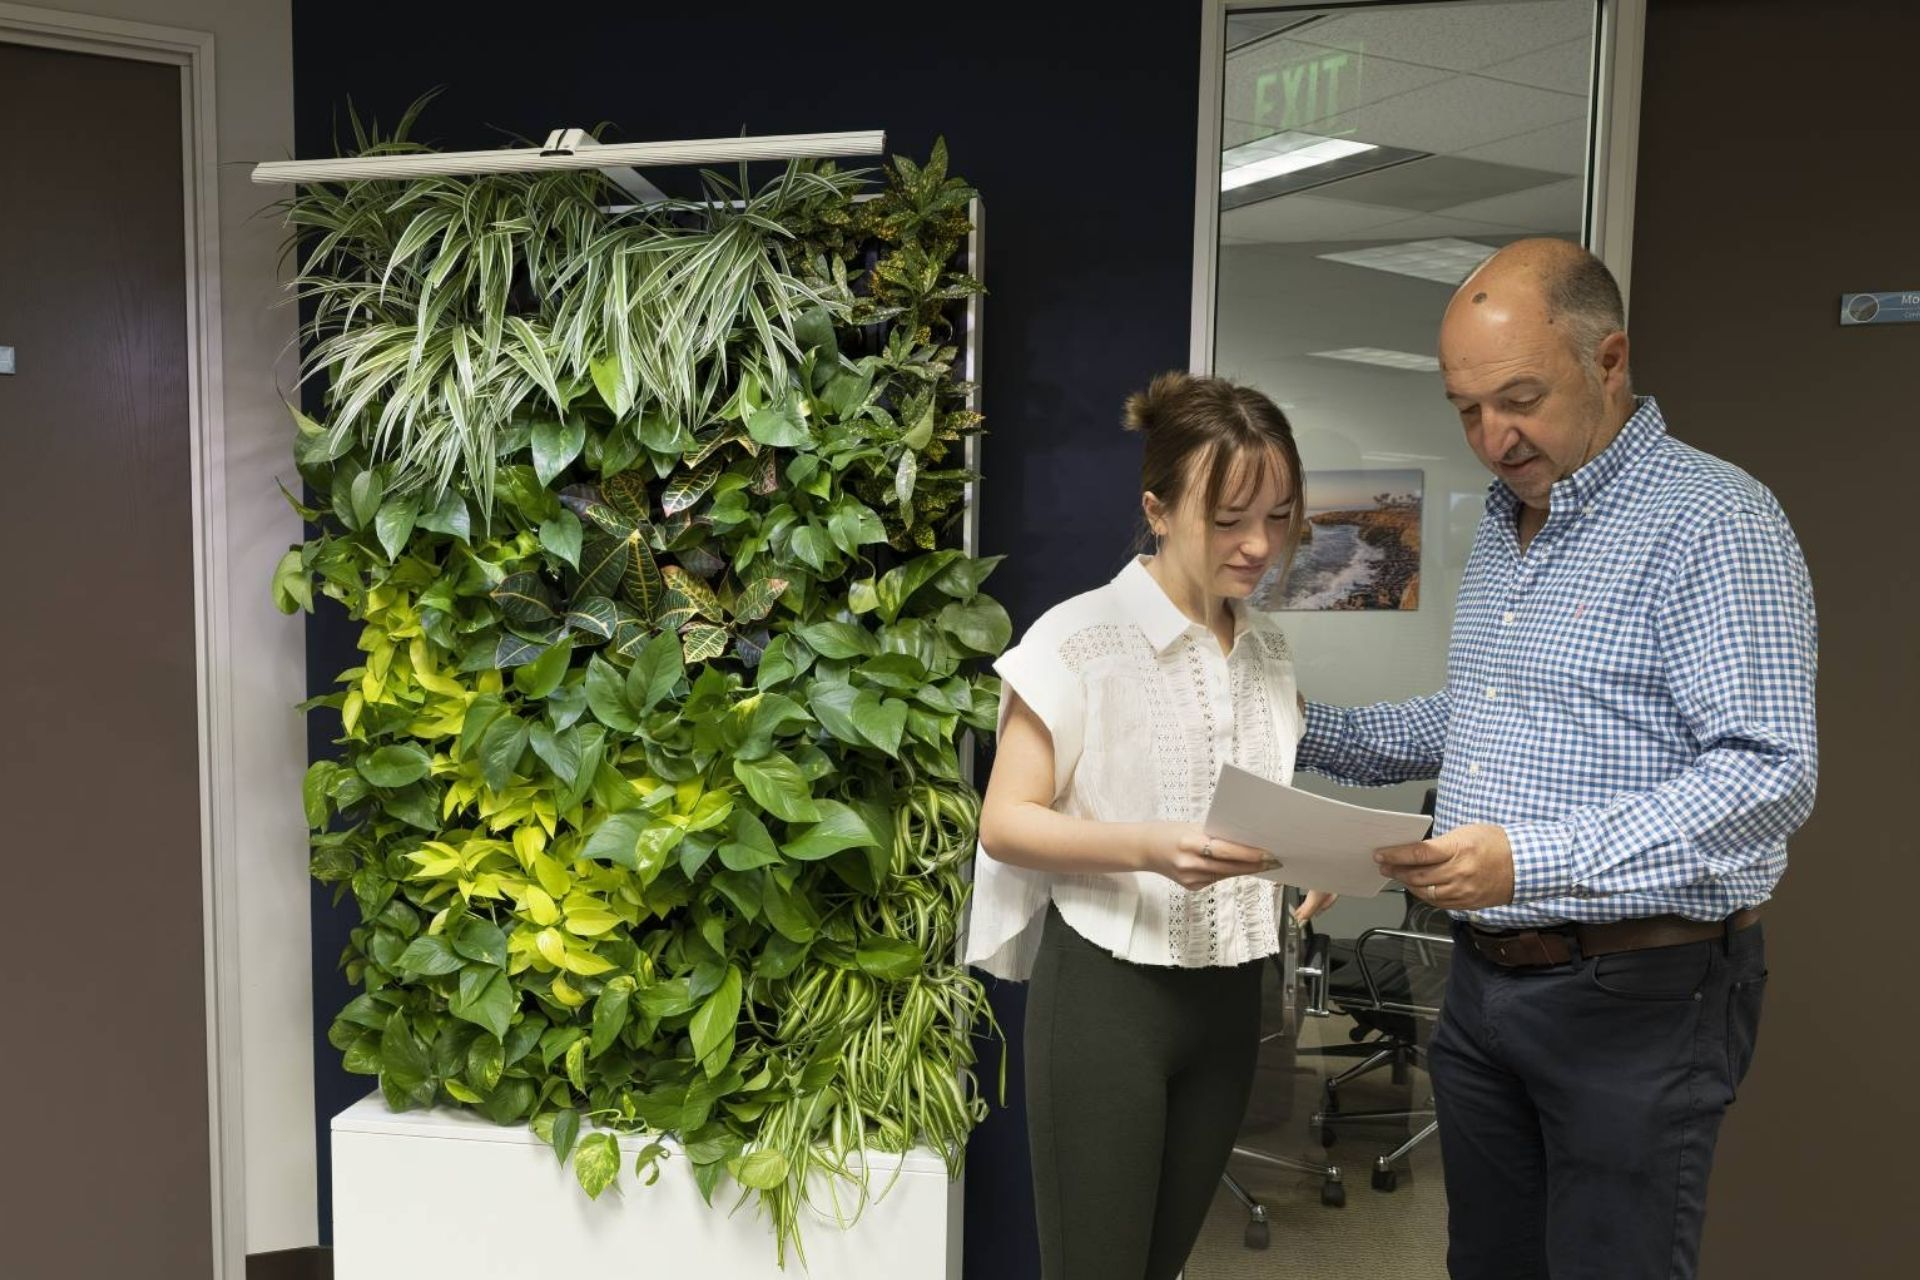 coworkers discussing work in front of mobile divider greenwall